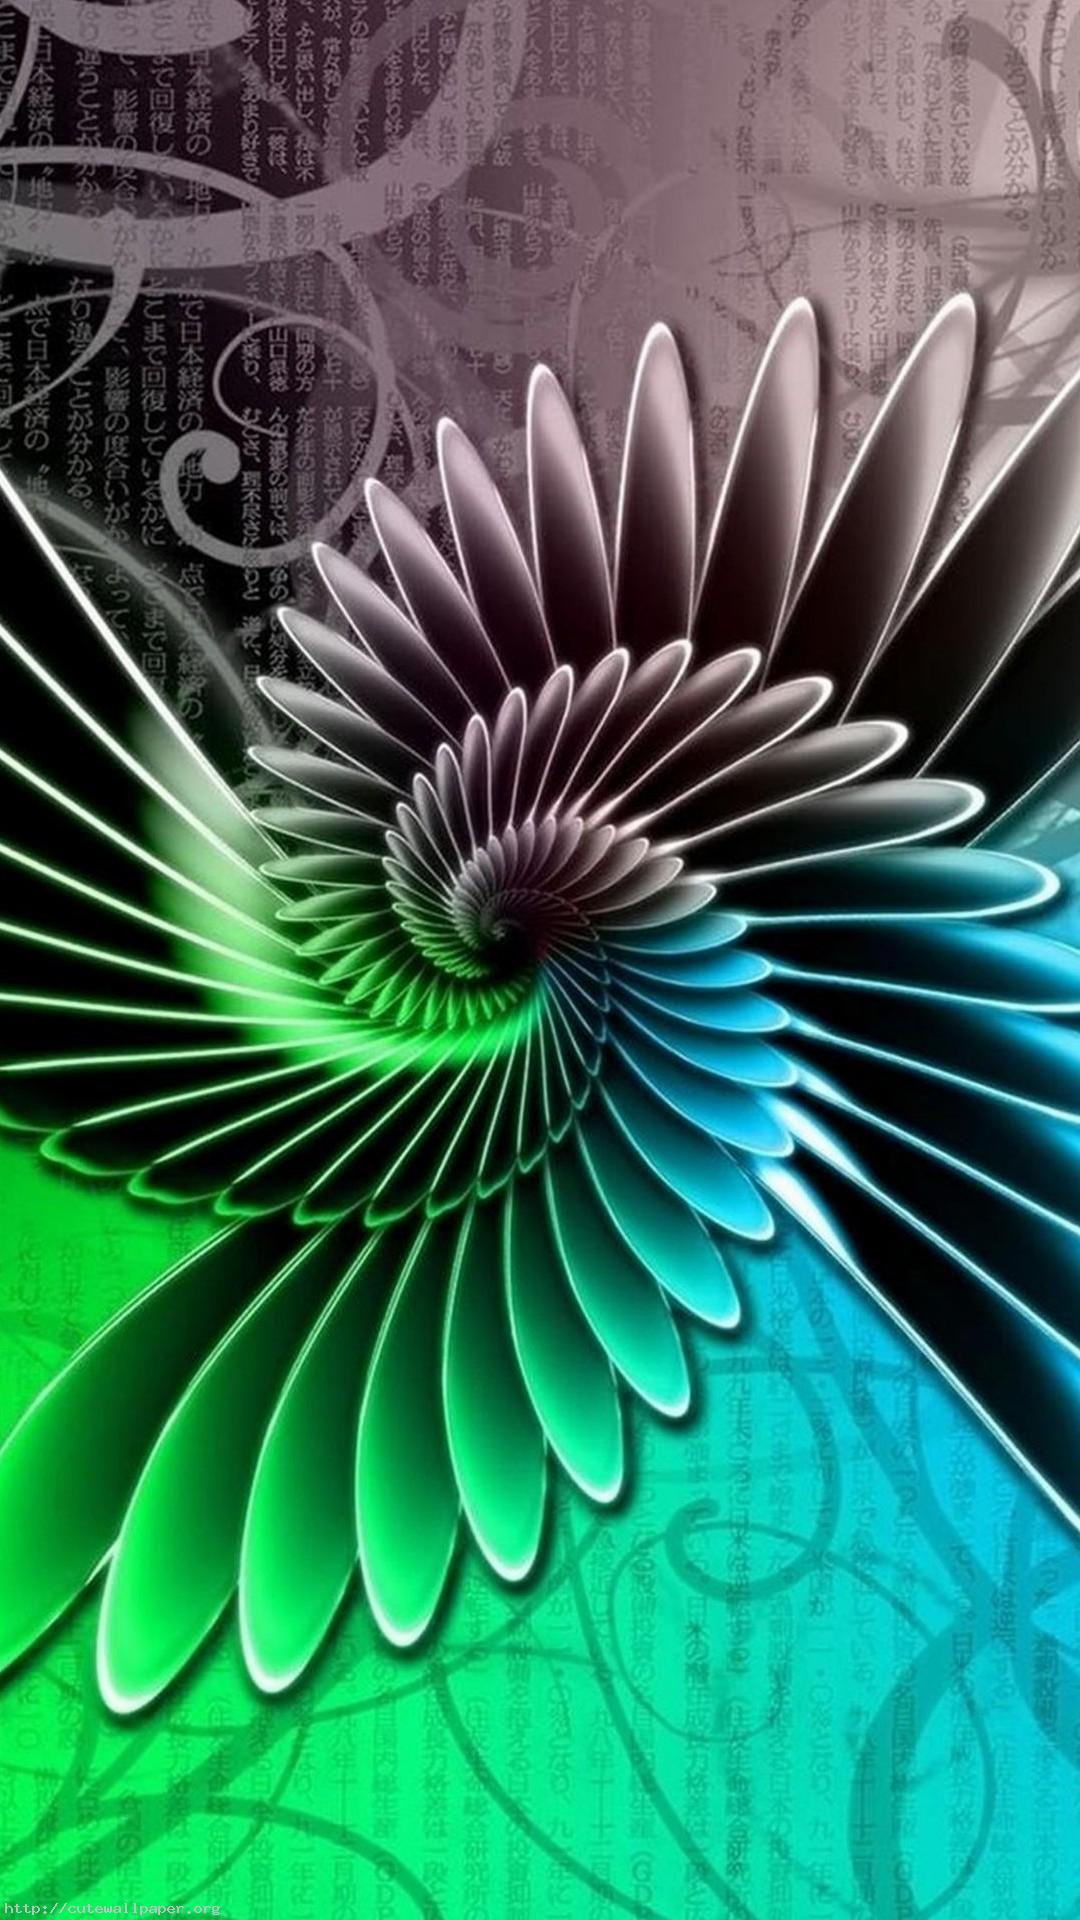 Download samsung mobile 3d wallpaper gallery - Neon hd wallpaper for mobile ...